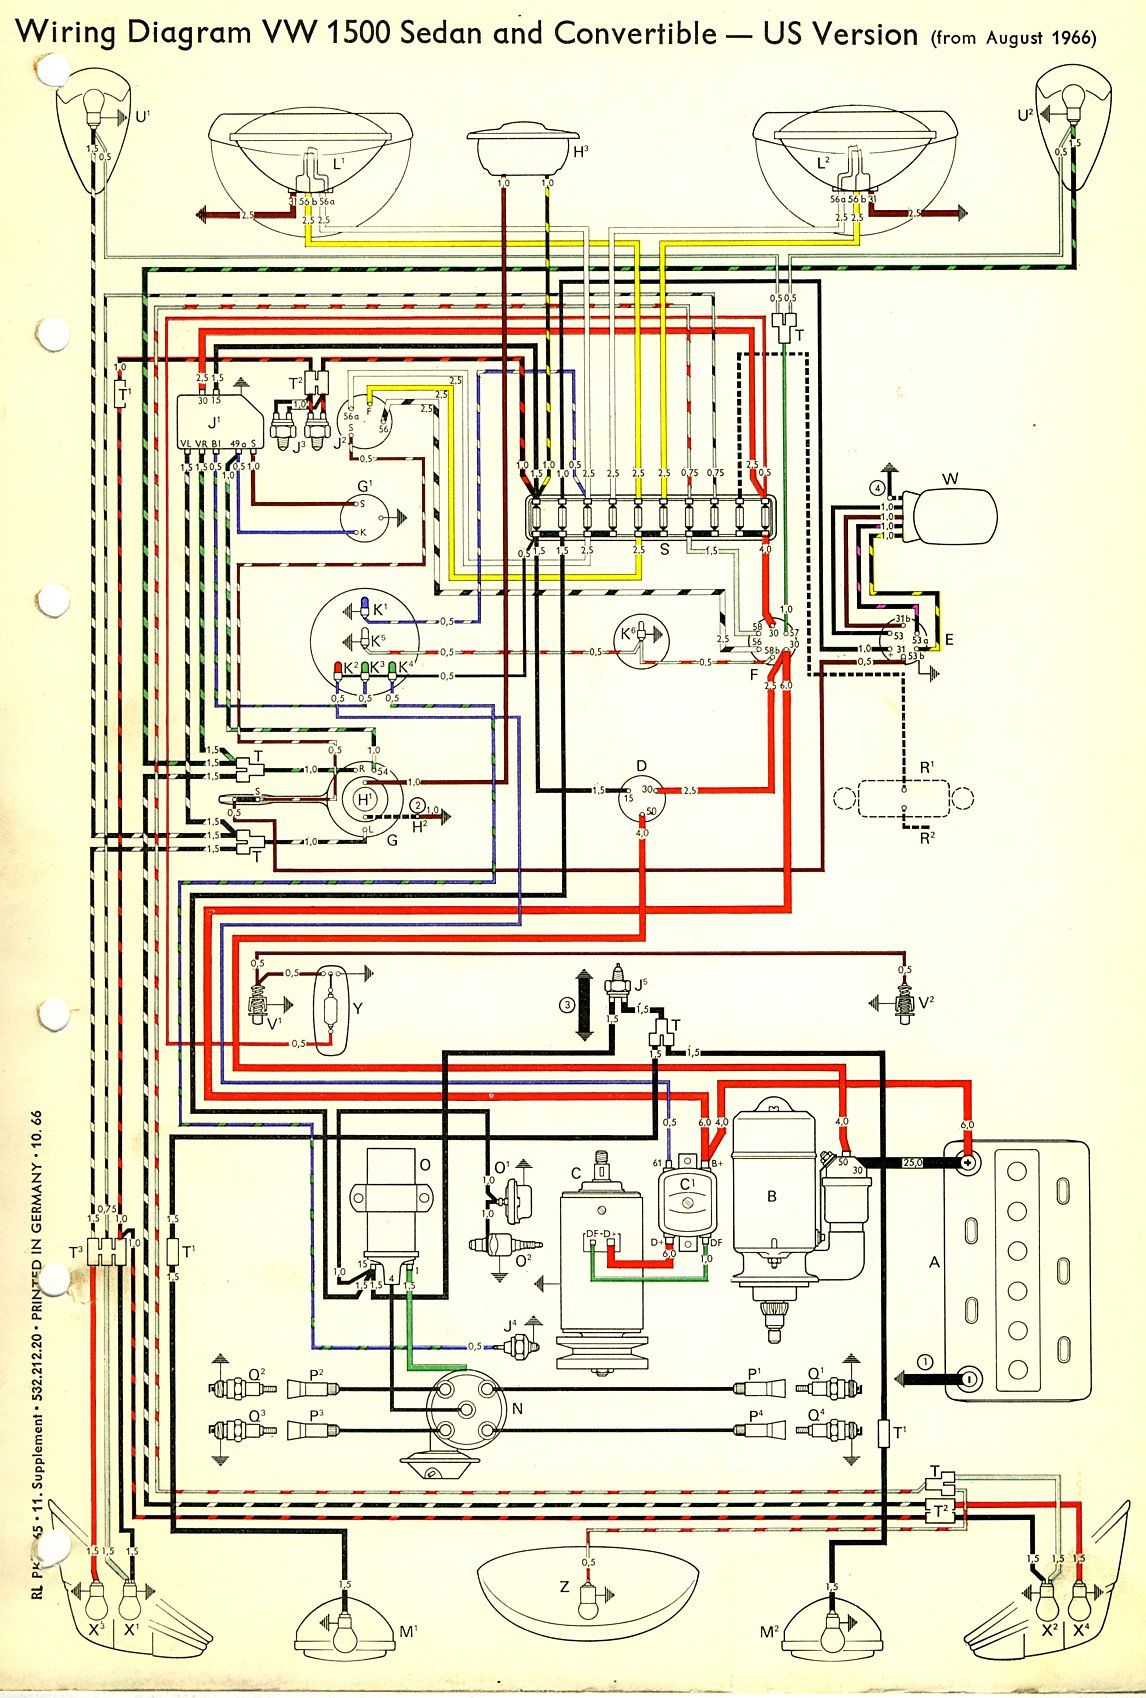 1974 vw thing wiring diagram 9 frv capecoral bootsvermietung de \u2022 Series and Parallel Circuits Diagrams vw thing wiring diagram 12 frv capecoral bootsvermietung de u2022 rh 12 frv capecoral bootsvermietung de 74 vw thing wiring schematic 1974 volkswagen wiring